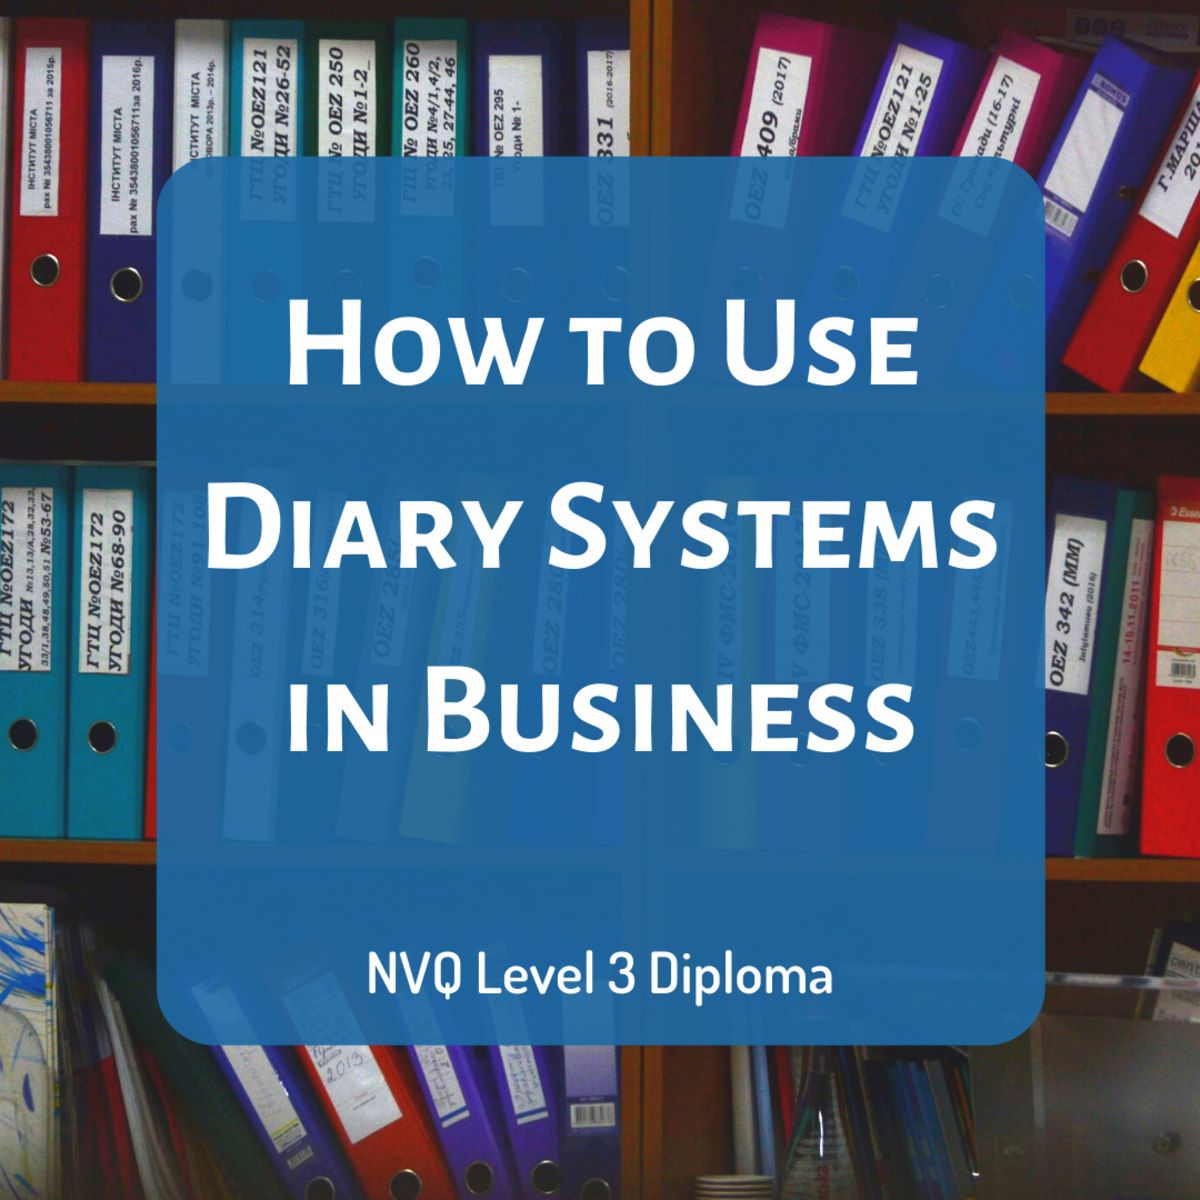 Review the use of diary systems in business administration, including the types of diaries available, the information that should be included, and how to securely store the entries.